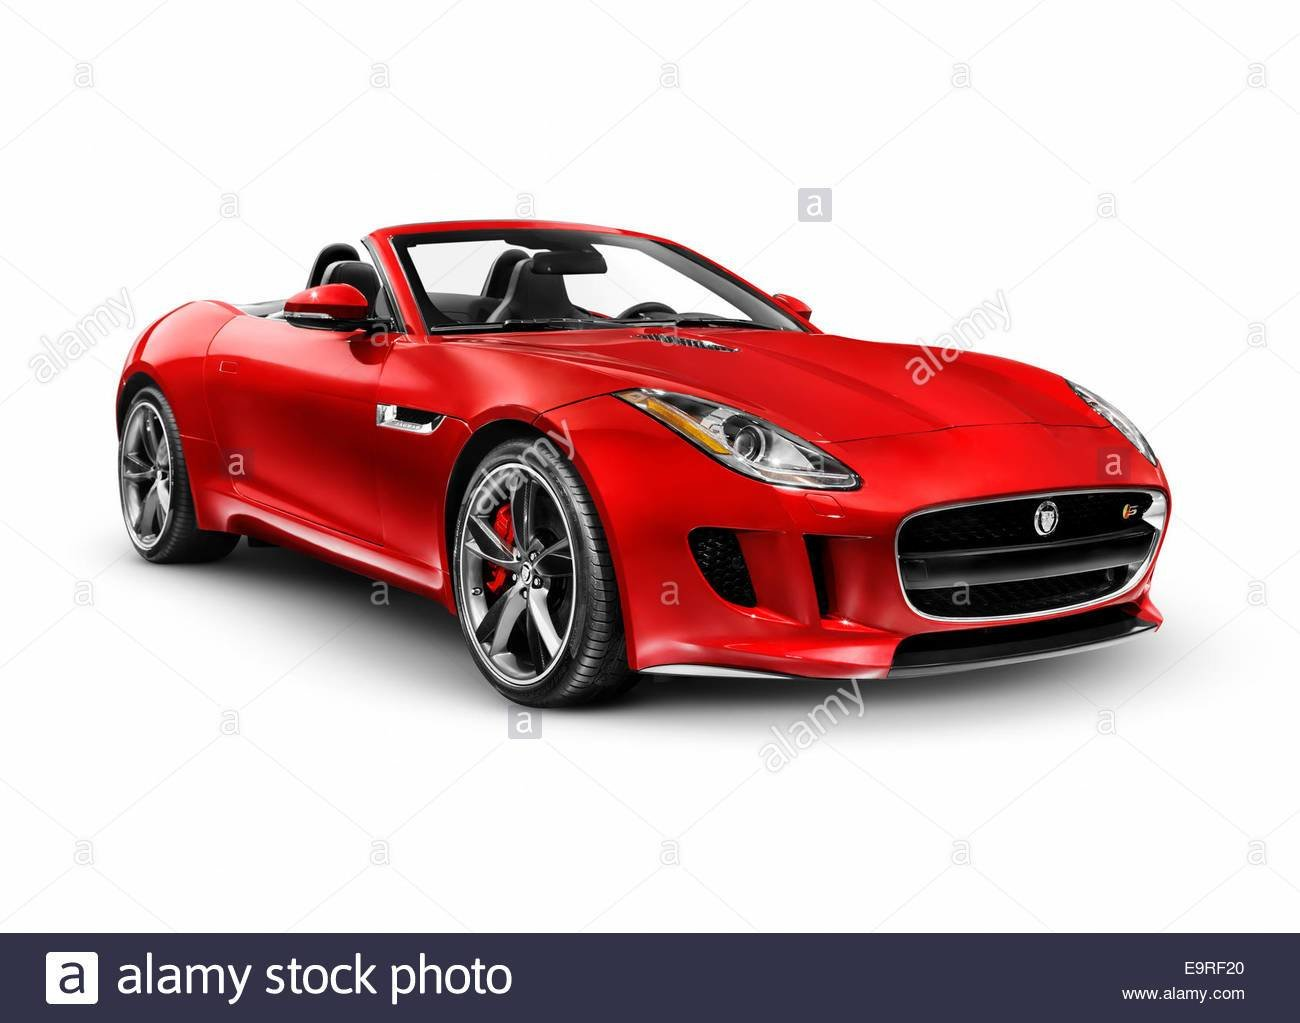 New Red 2014 Jaguar F Type S Luxury Sports Car Isolated On On This Month